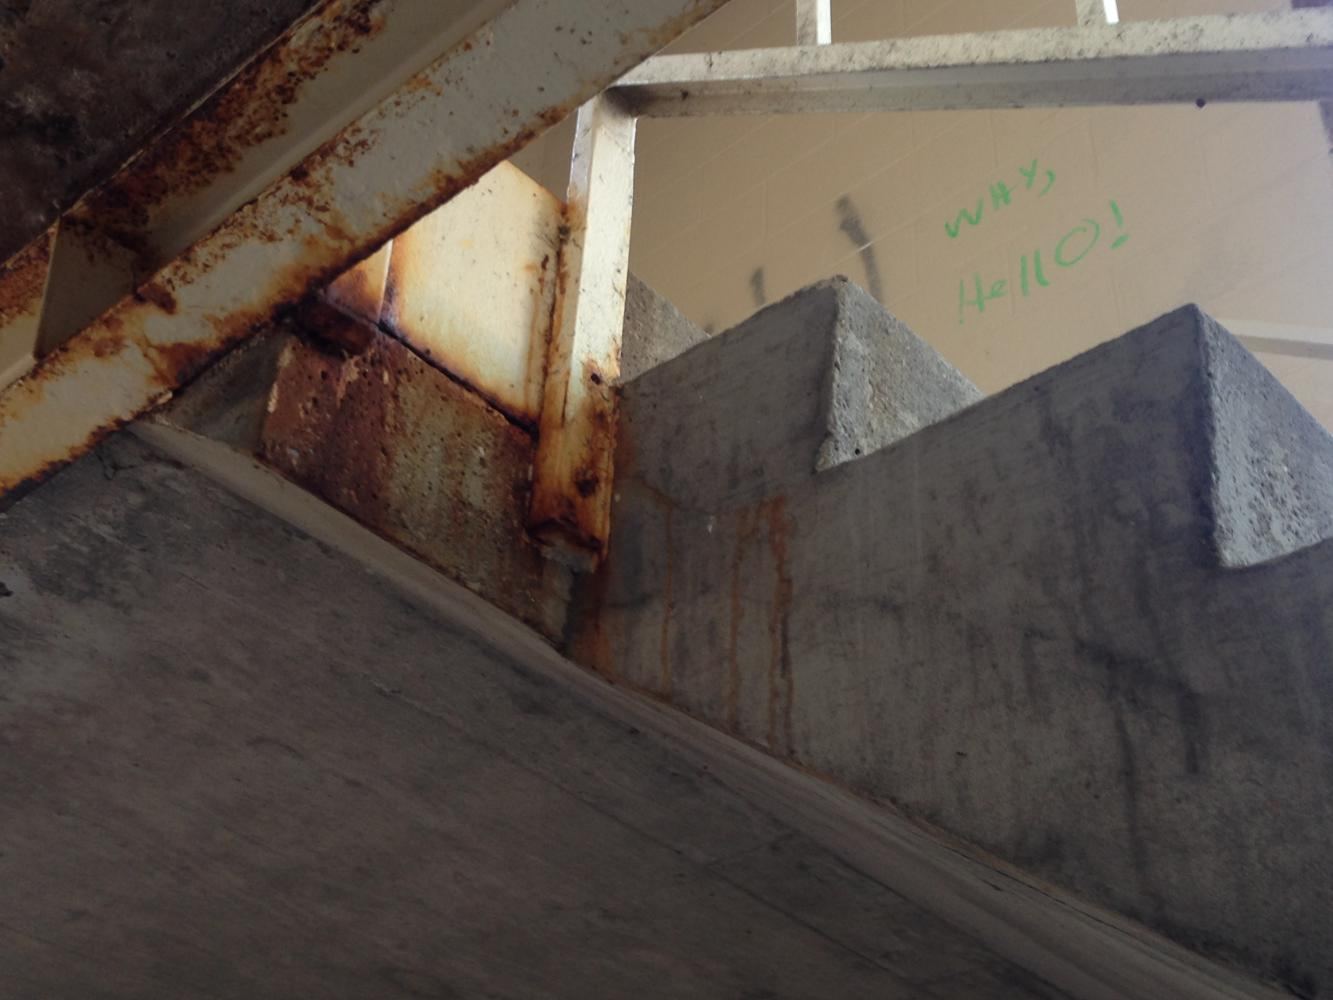 The second floor of Friedli is home to some innocent-sounding graffiti.